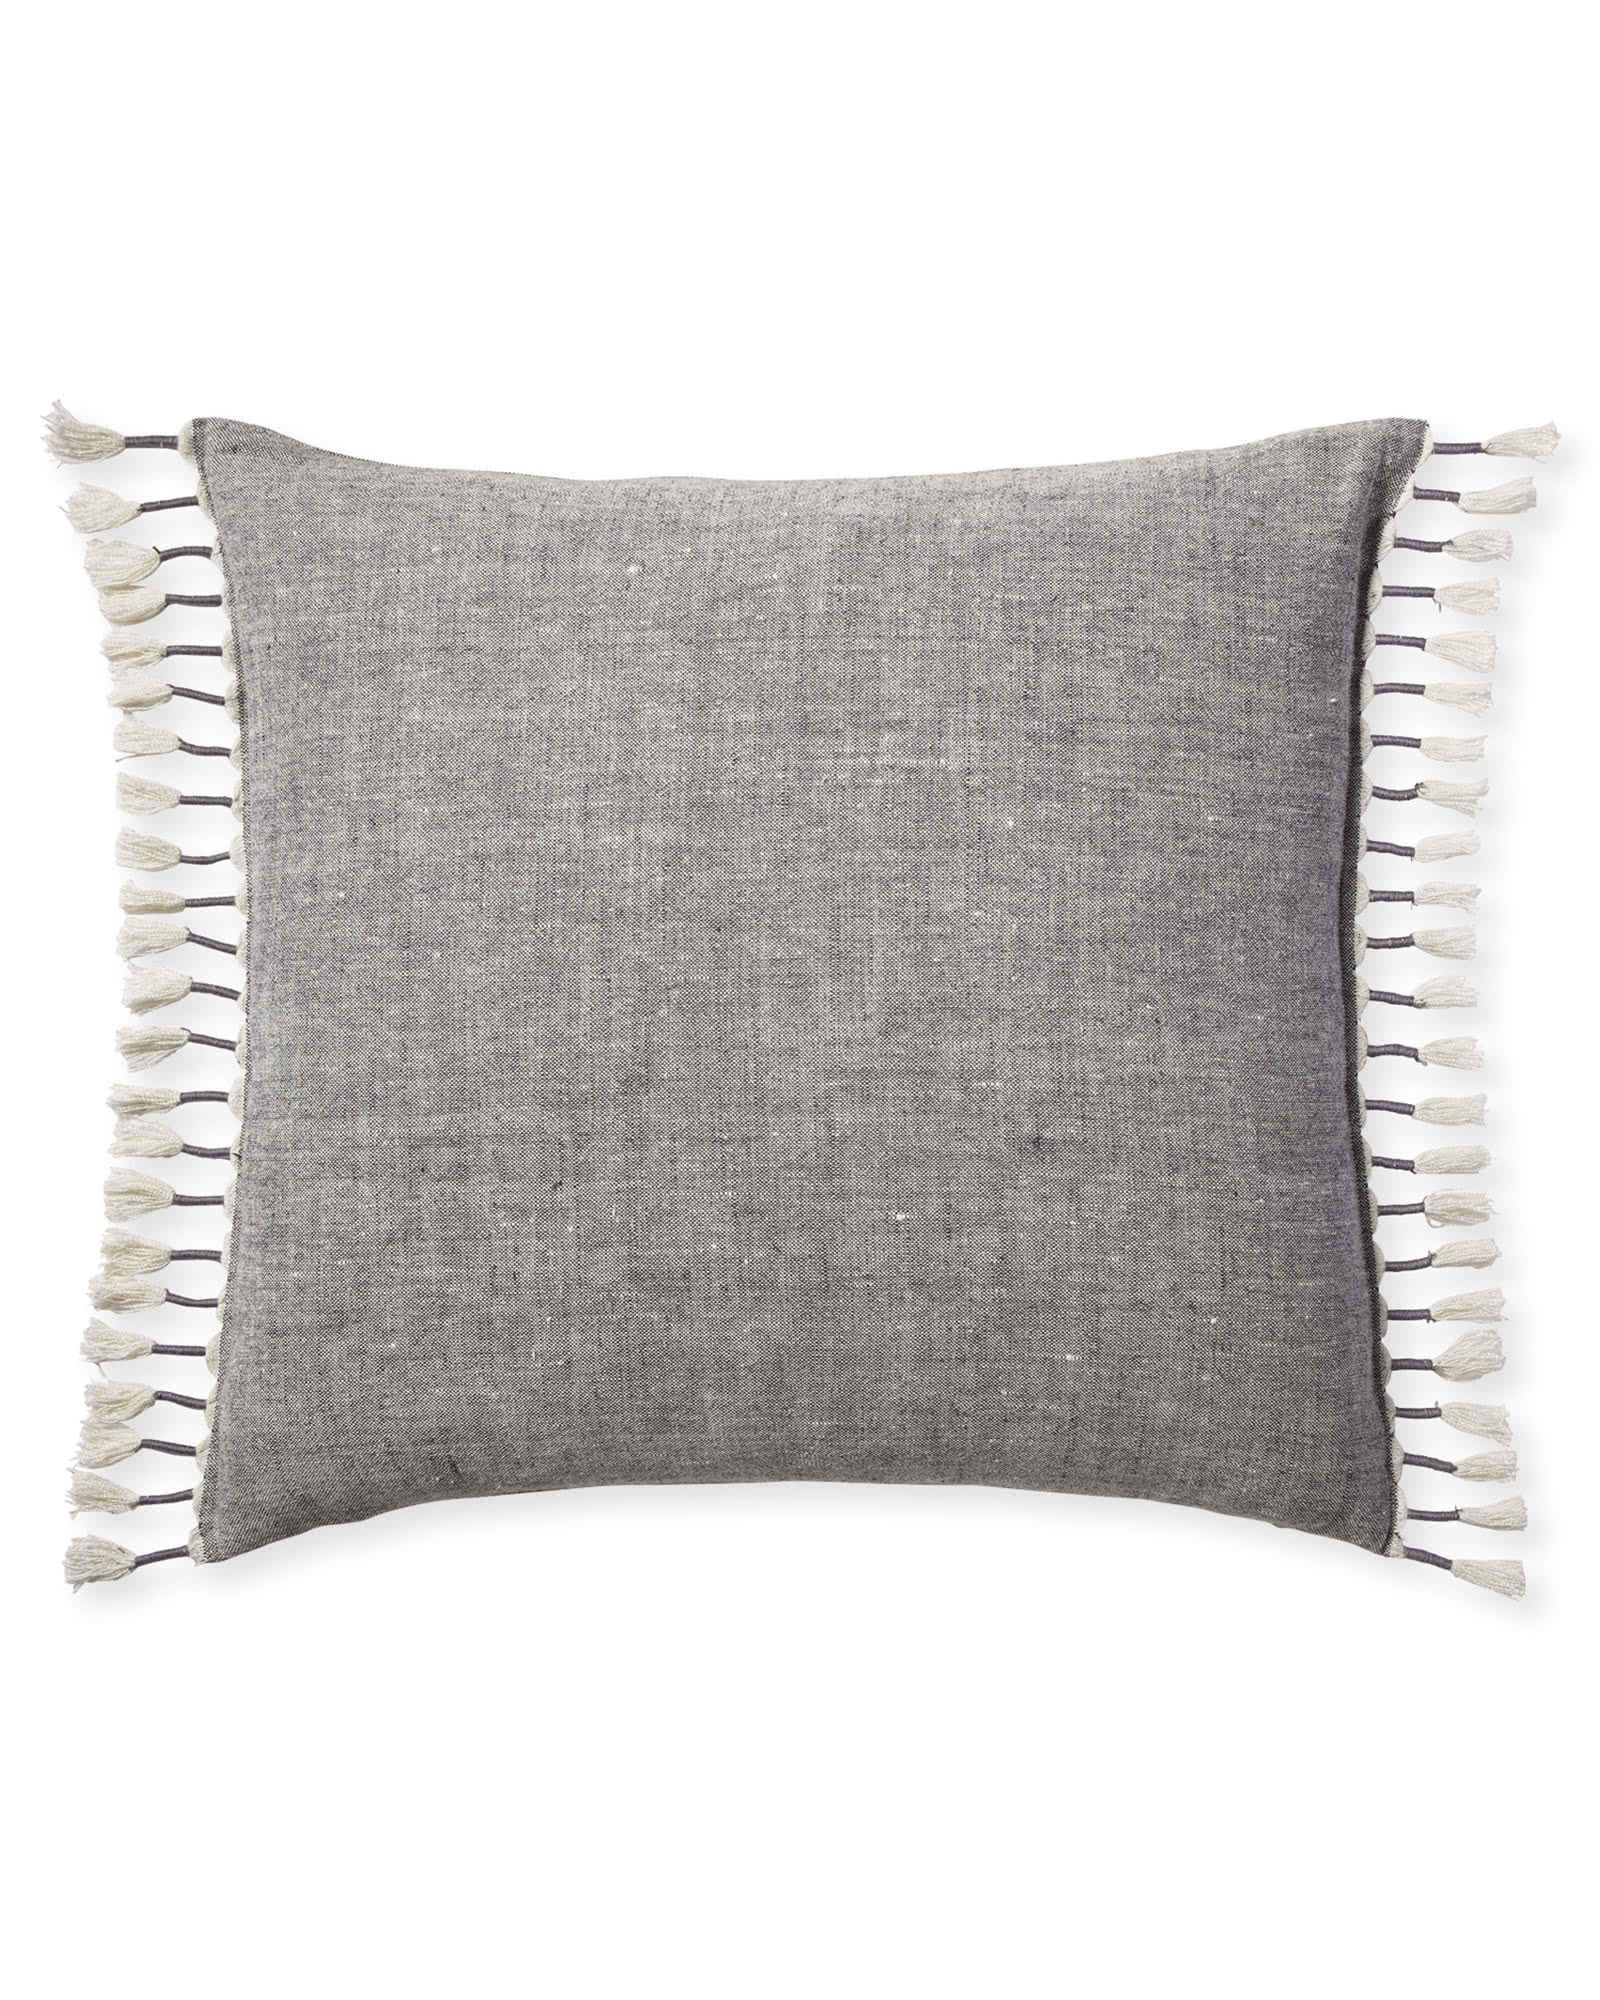 Topanga Pillow Cover, Grey